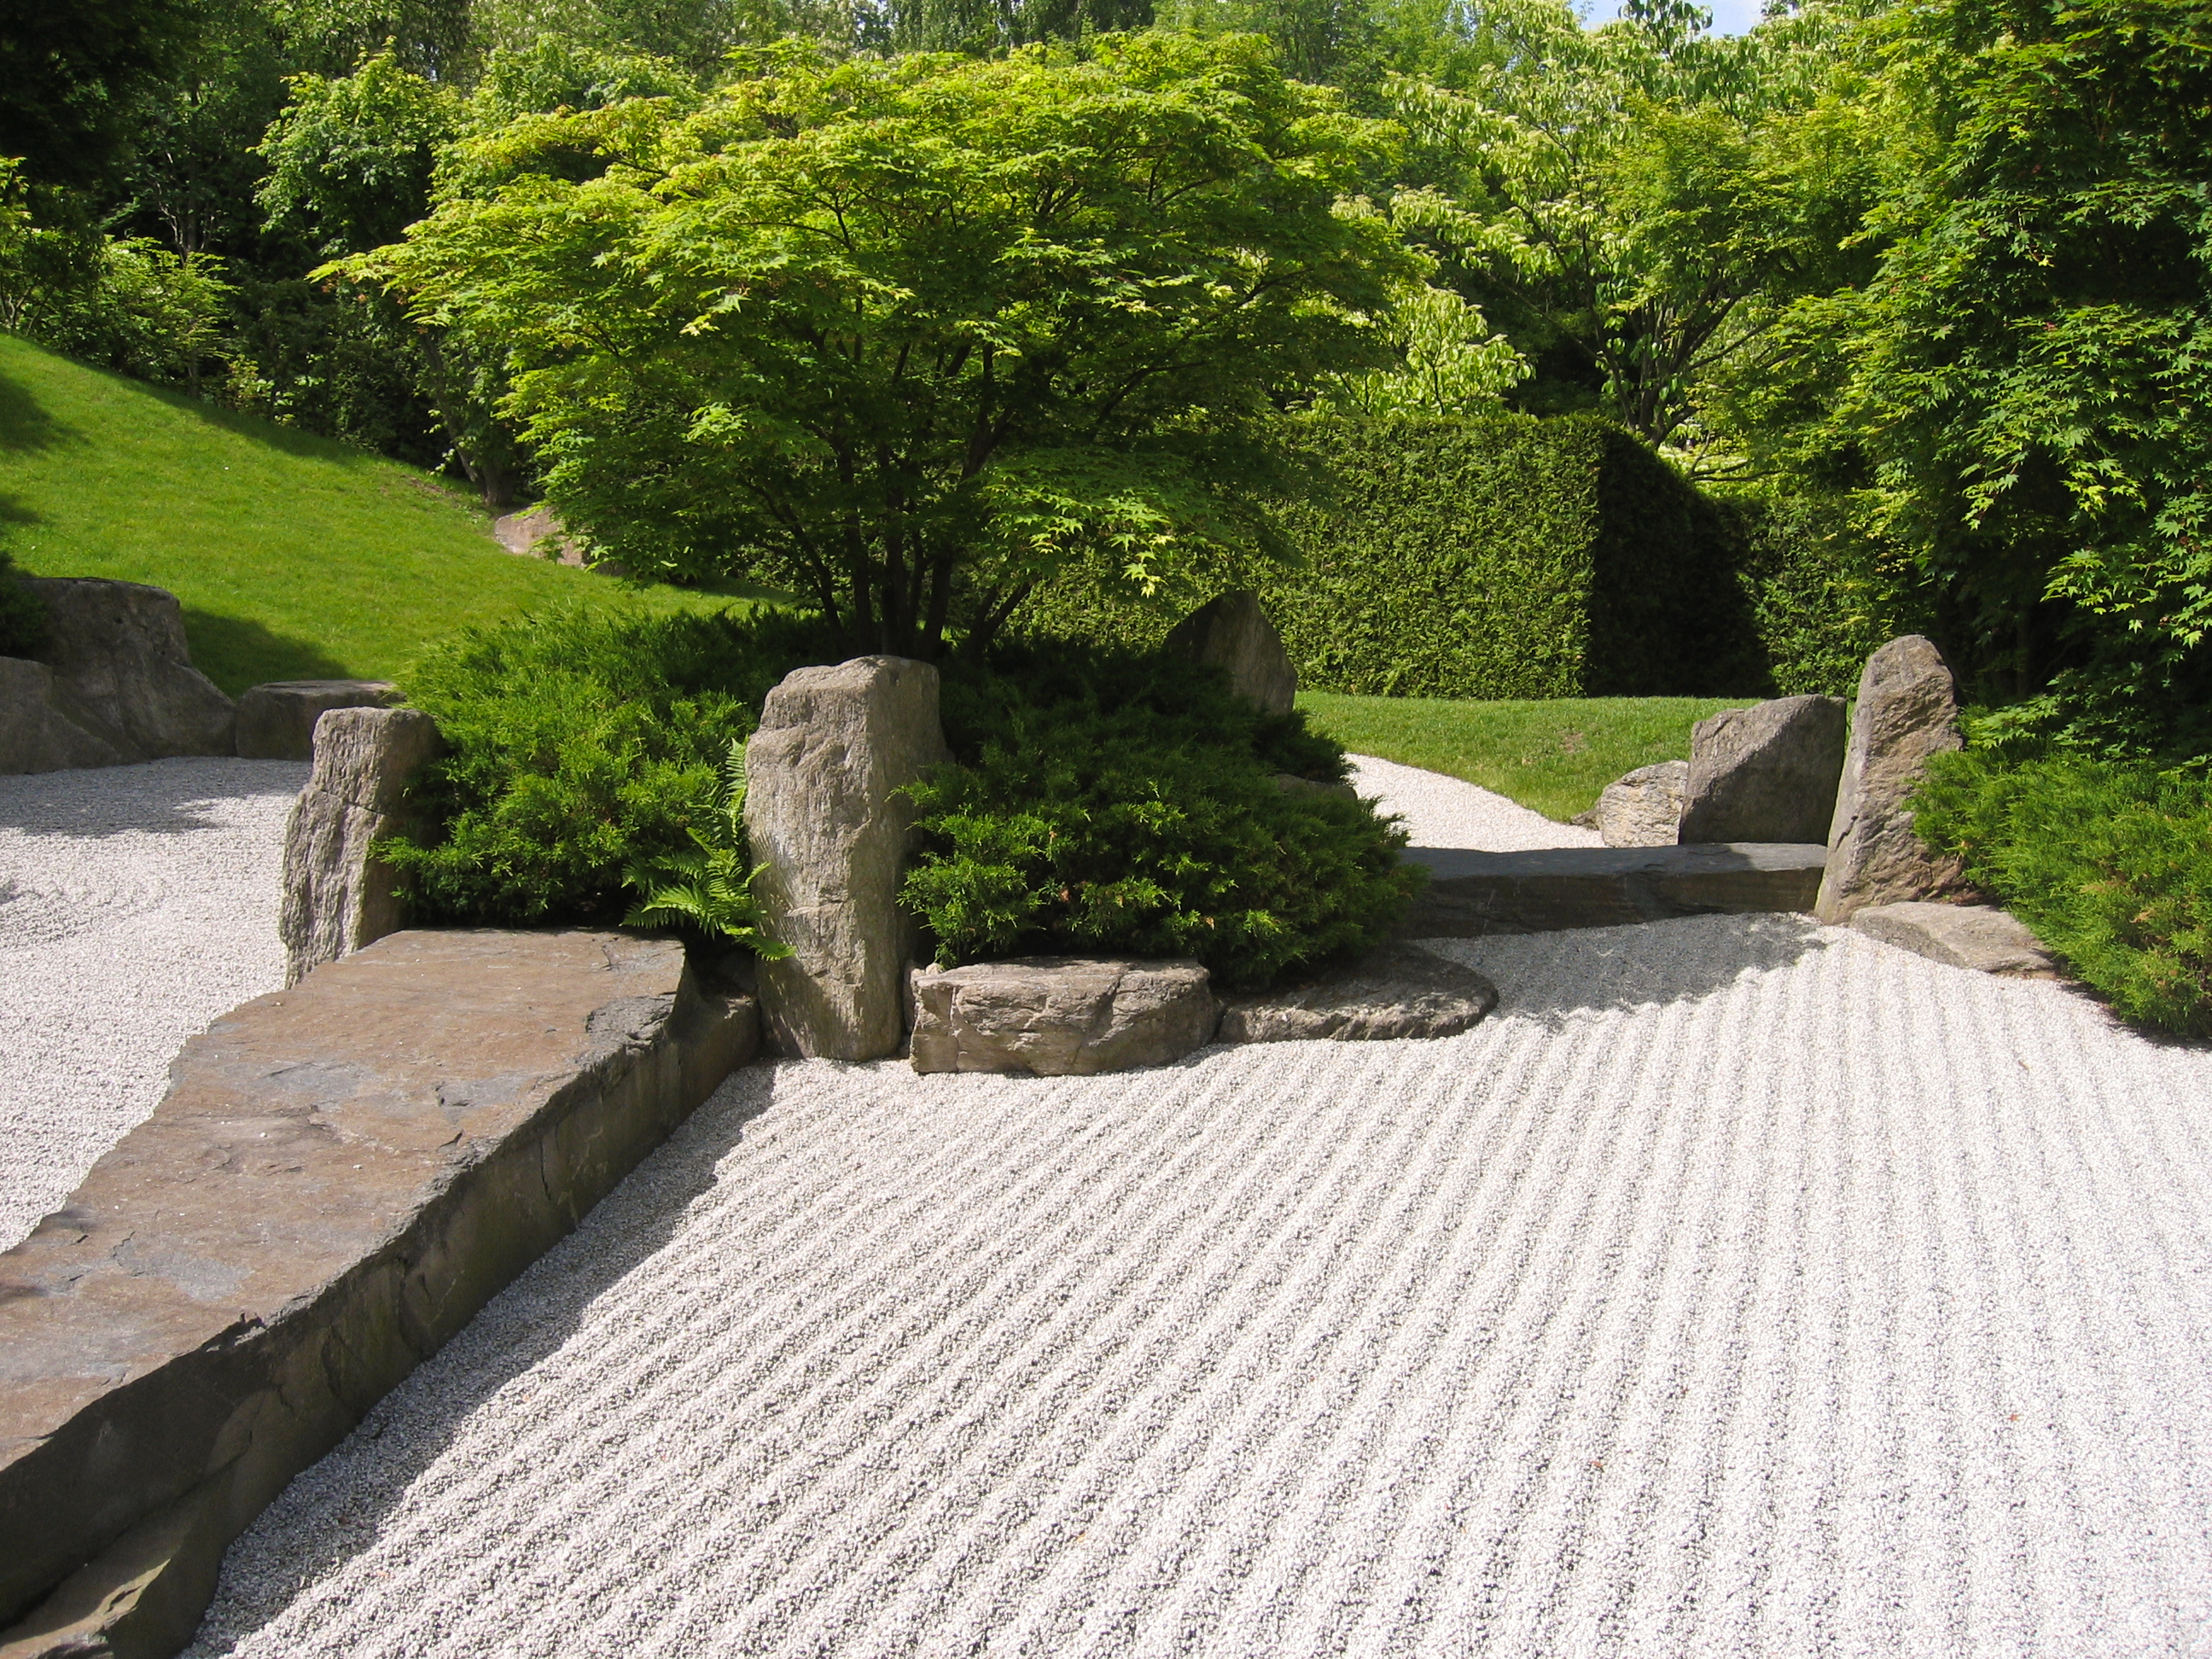 Garden design common garden stylesse landscape for Japanese garden ideas